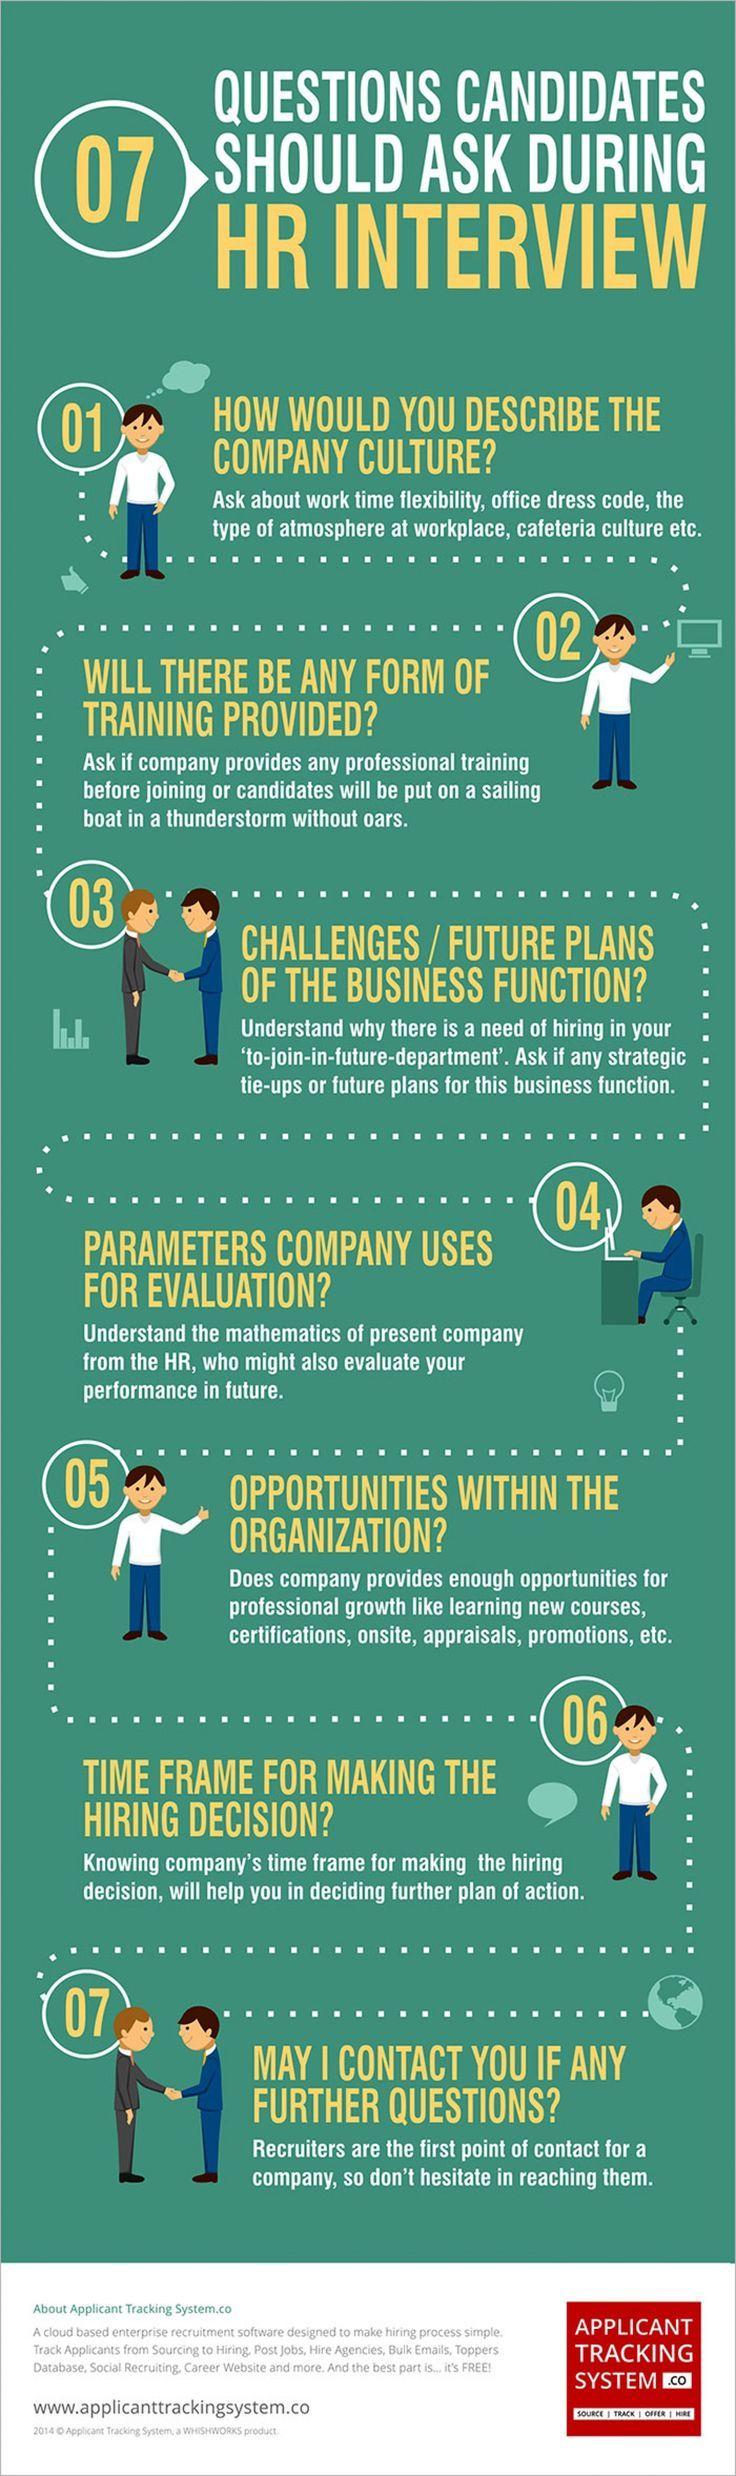 7 questions candidates should ask during hr interview infographic recruitingblogs - Personal Trainer Interview Questions